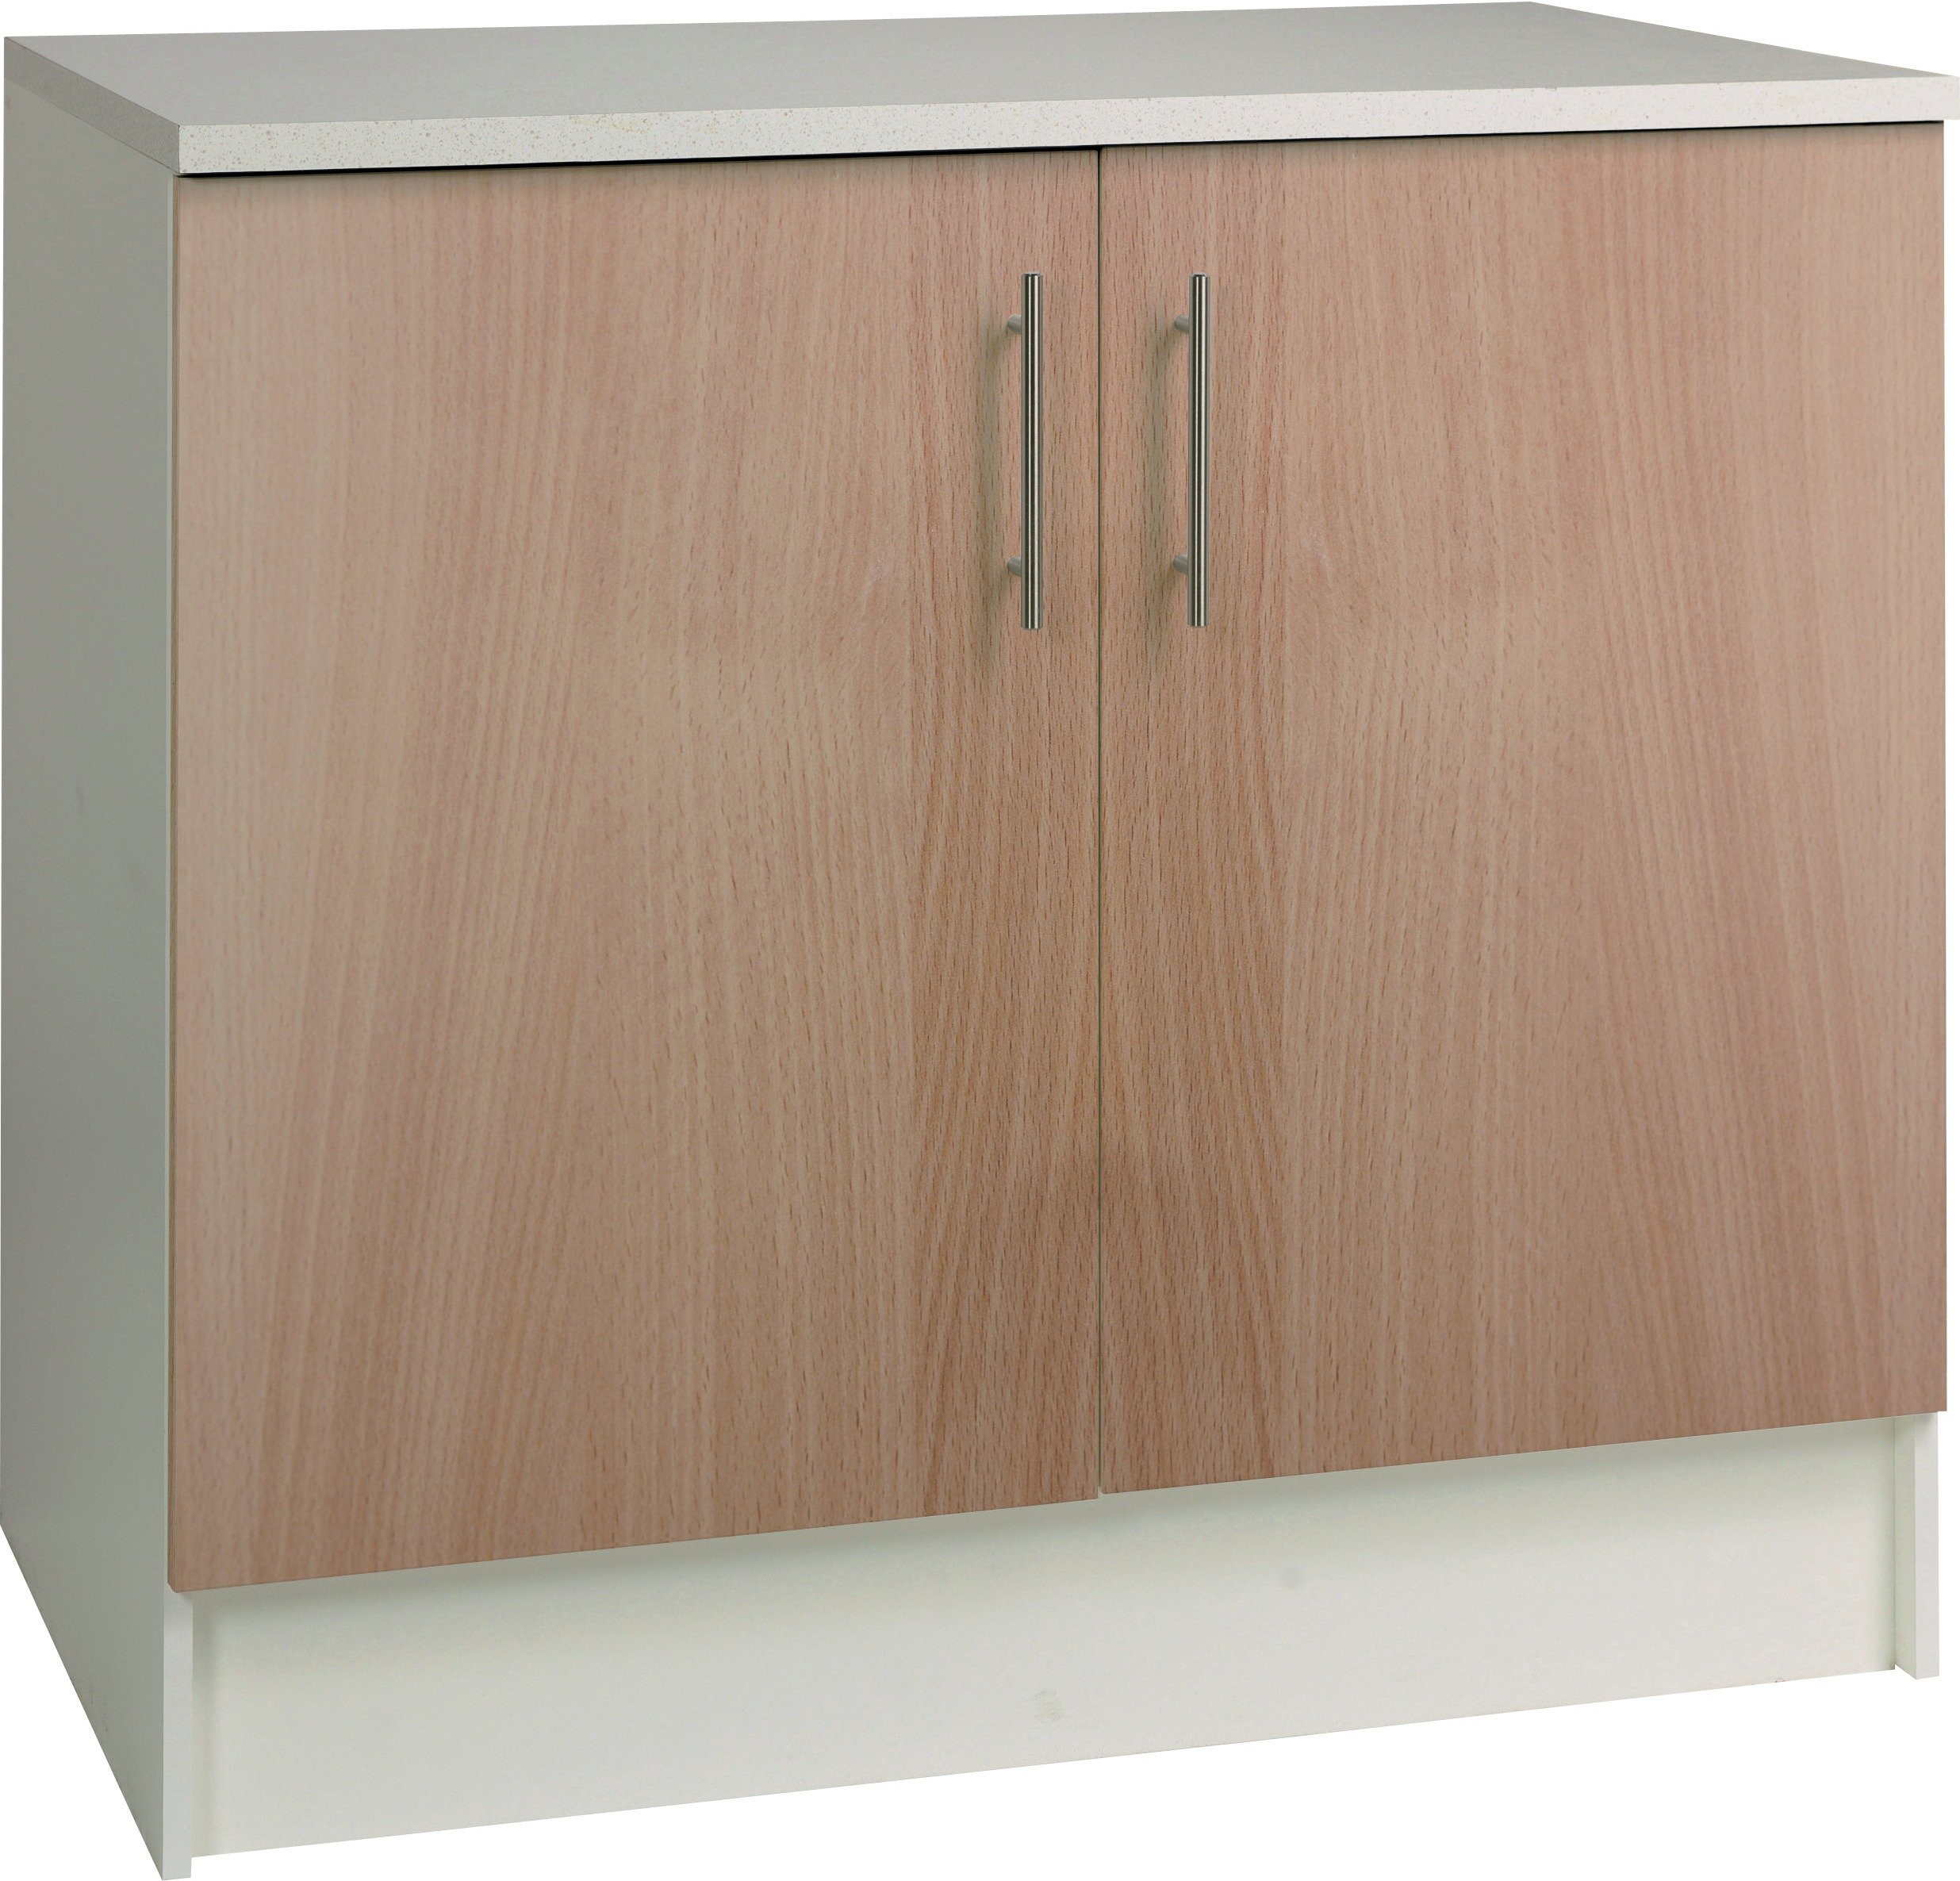 Kitchen Units Available From Kitchendesigns.co.uk